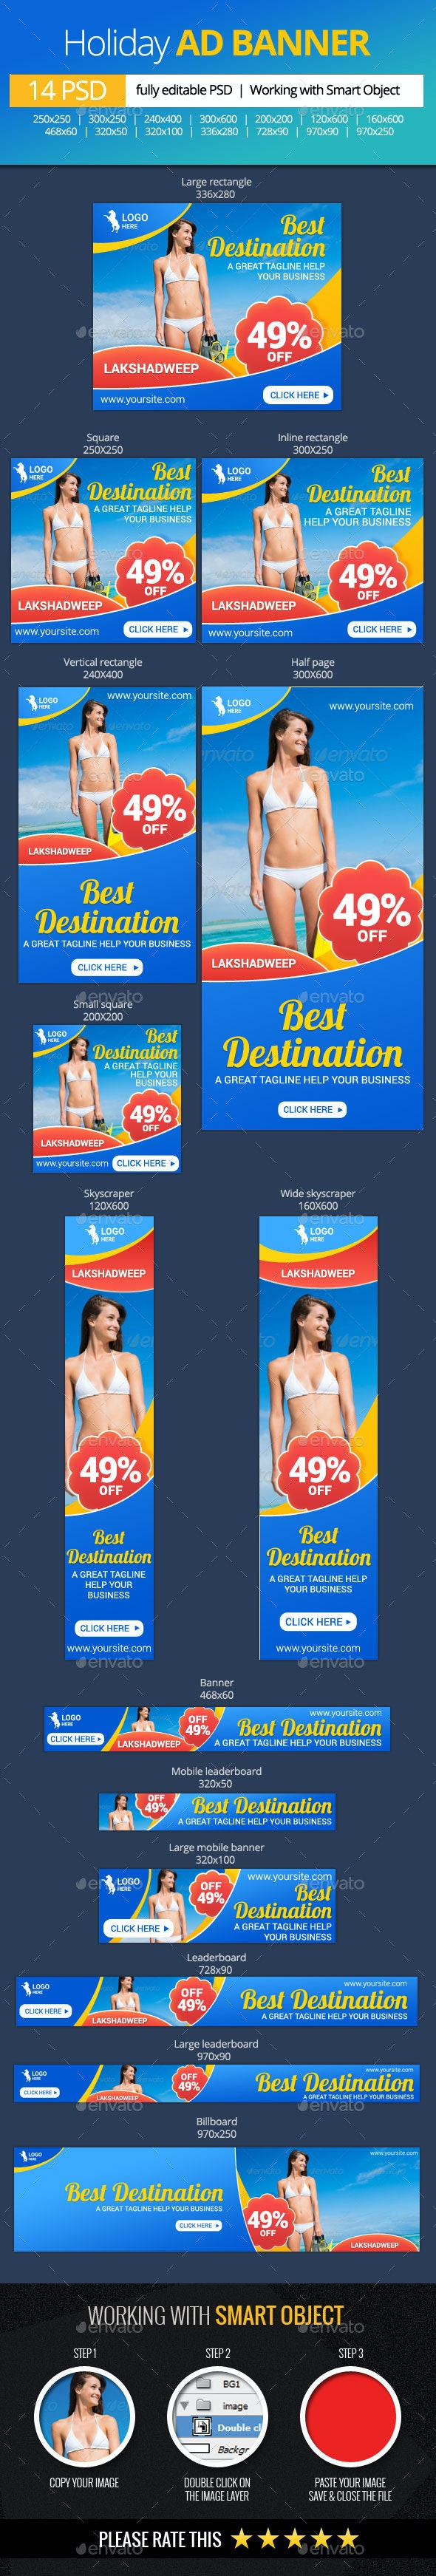 Holiday Vacations Web Banners - Banners & Ads Web Elements